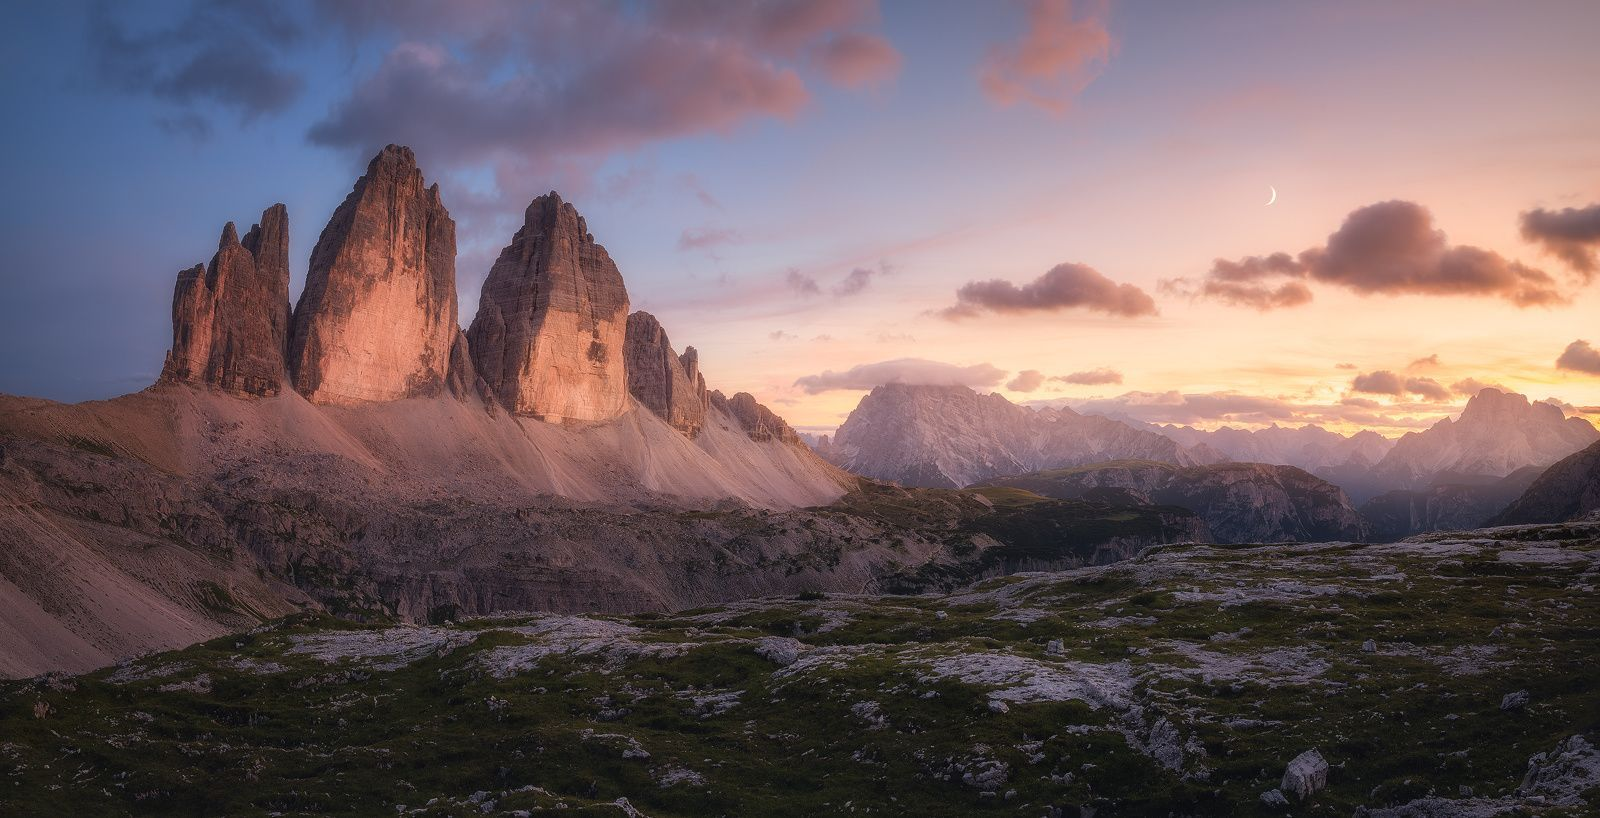 An Evening in the Dolomites  Landscapes photo by Fleischi88 http://rarme.com/?F9gZi